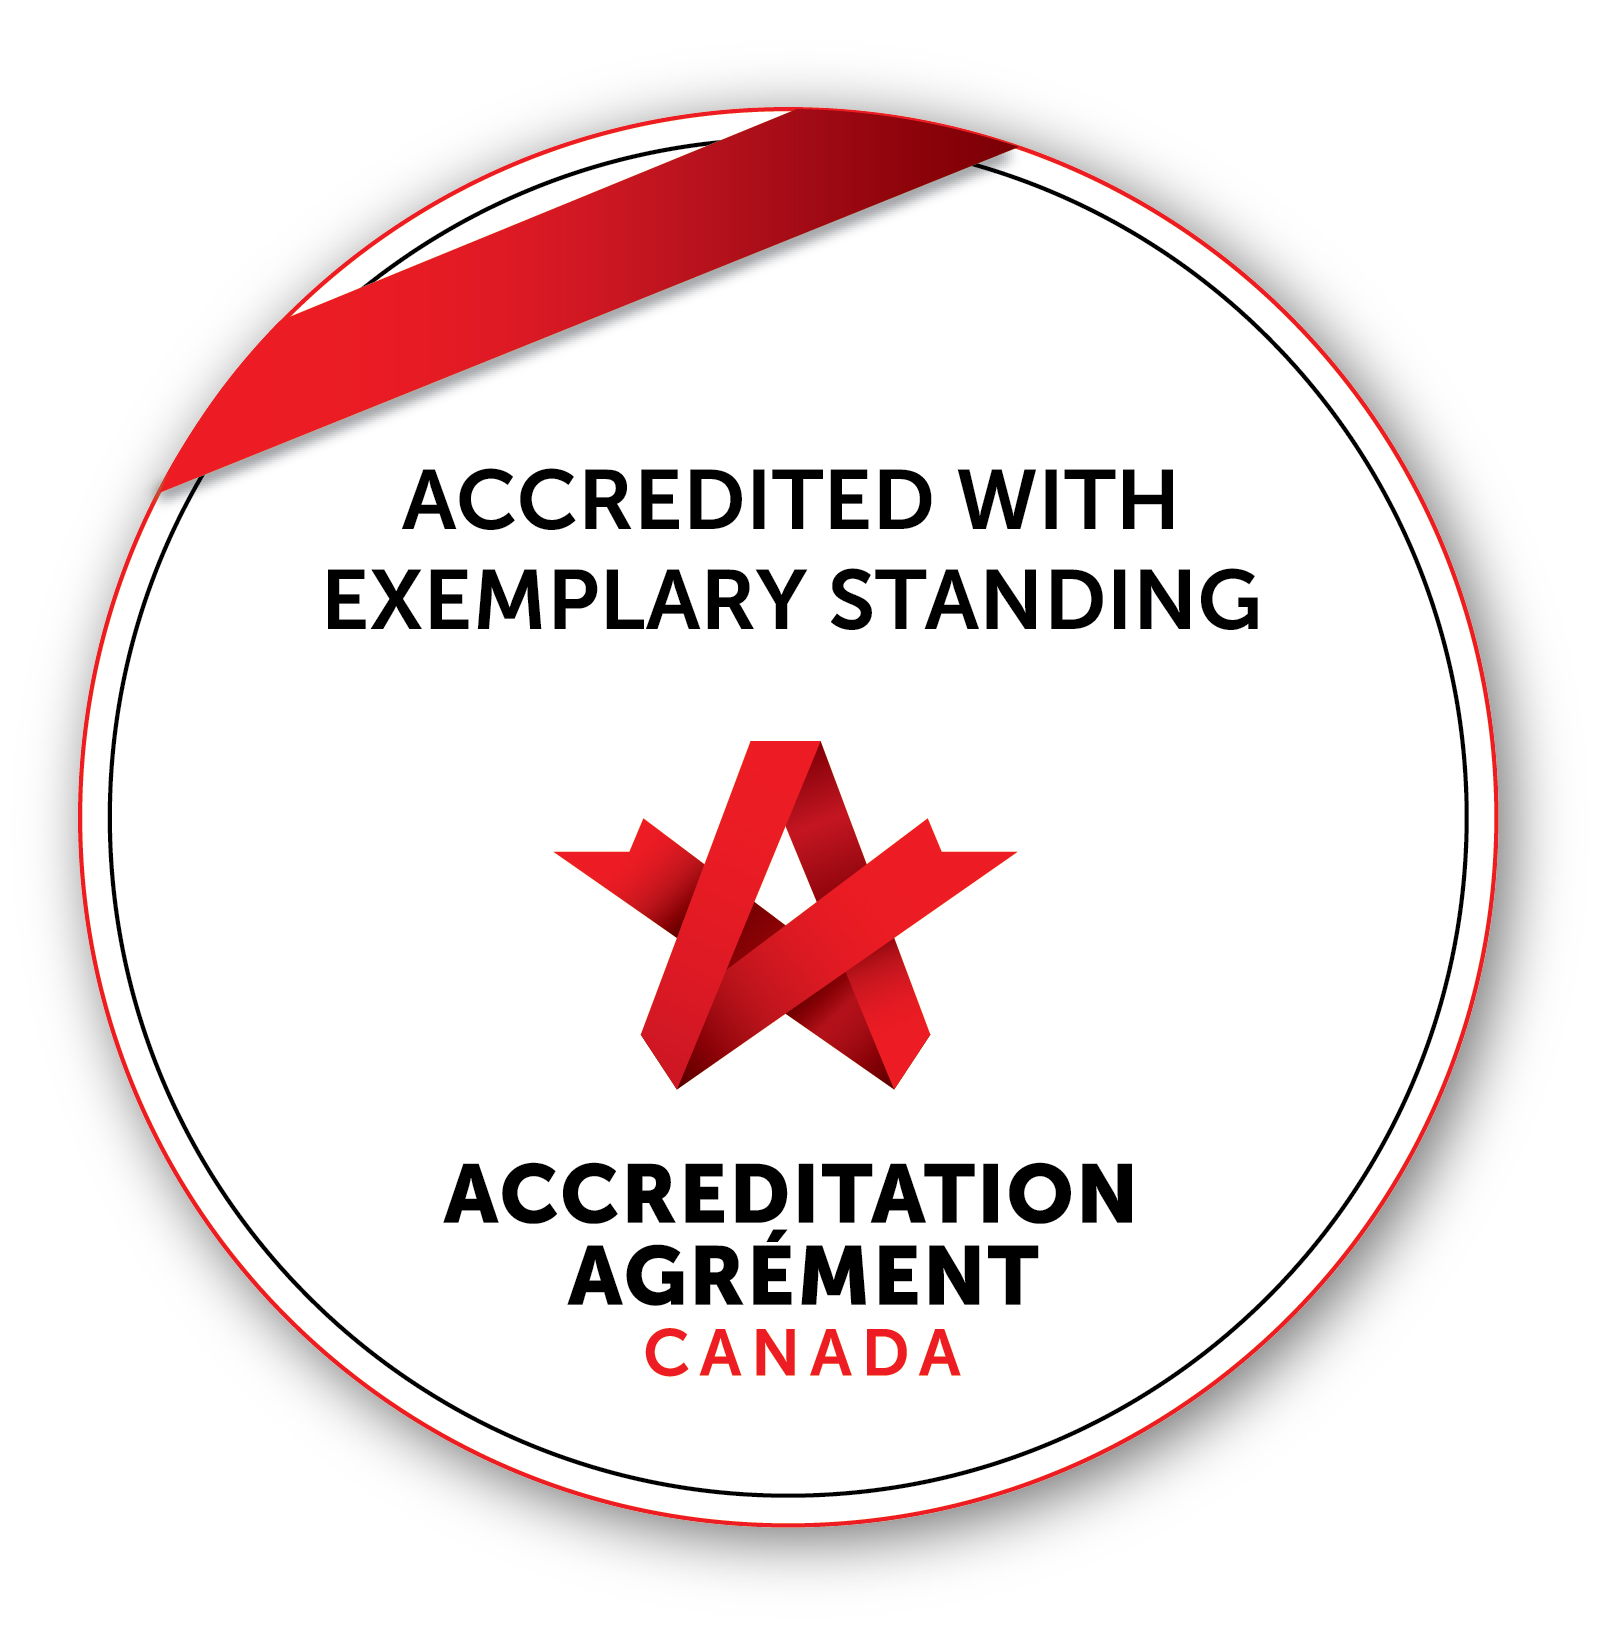 Accreditation Canada Seal: Accredited with Exemplary Standing